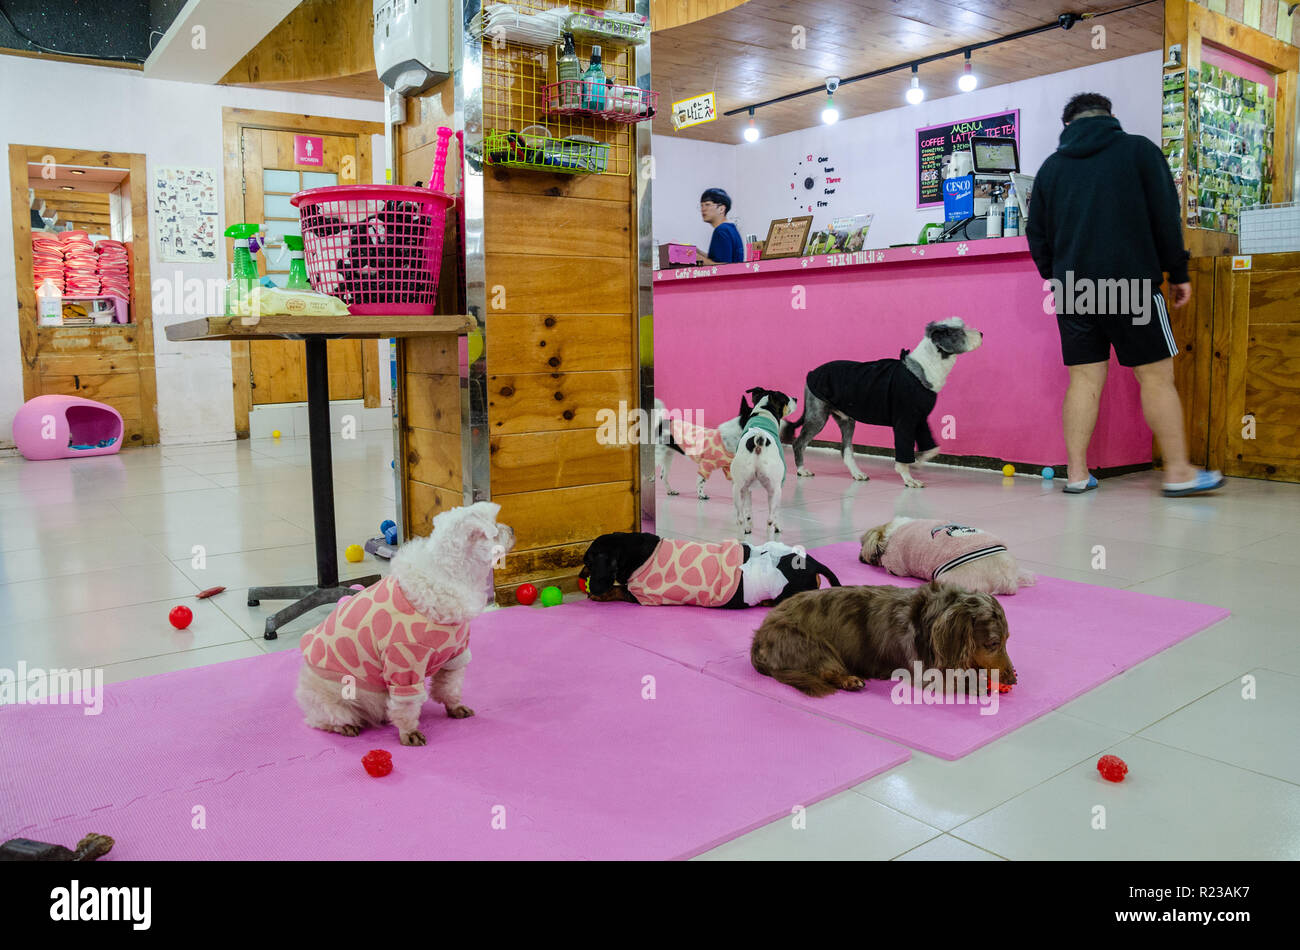 A dog cafe in Myeongdong in Seoul in south Korea with oink decor and lots of small dogs. - Stock Image